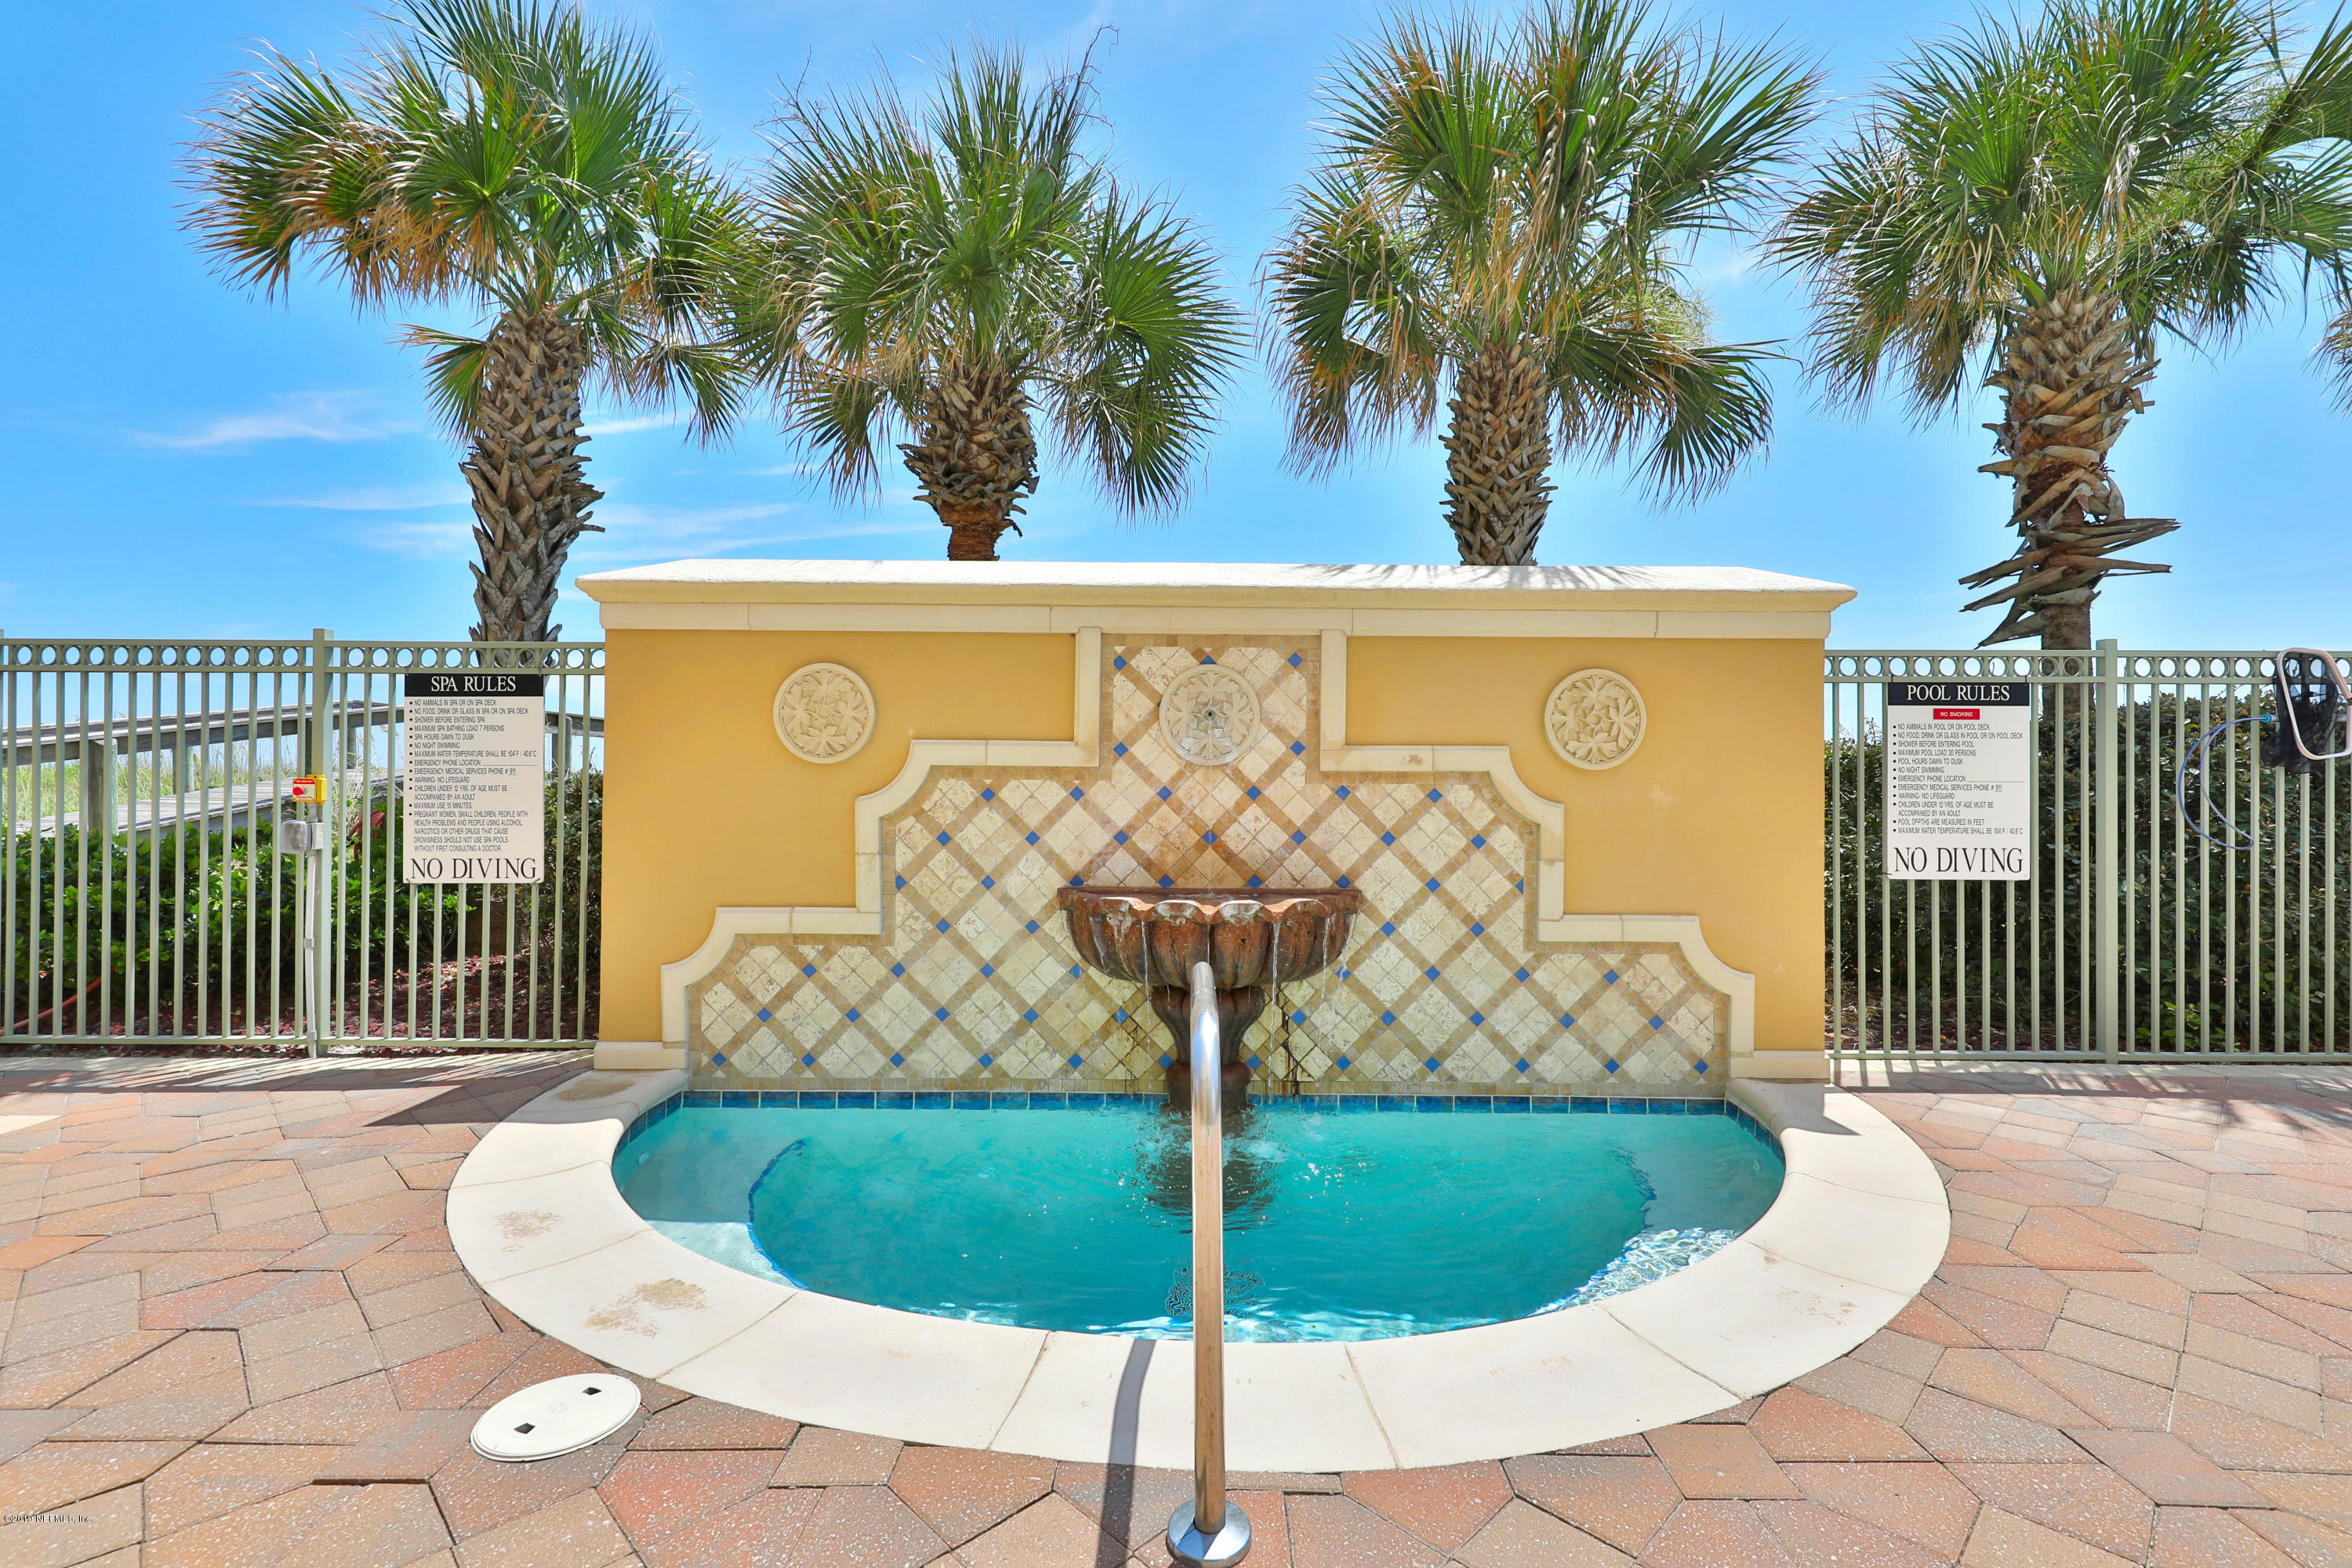 917 1ST, JACKSONVILLE BEACH, FLORIDA 32250, 3 Bedrooms Bedrooms, ,3 BathroomsBathrooms,Condo,For sale,1ST,912781